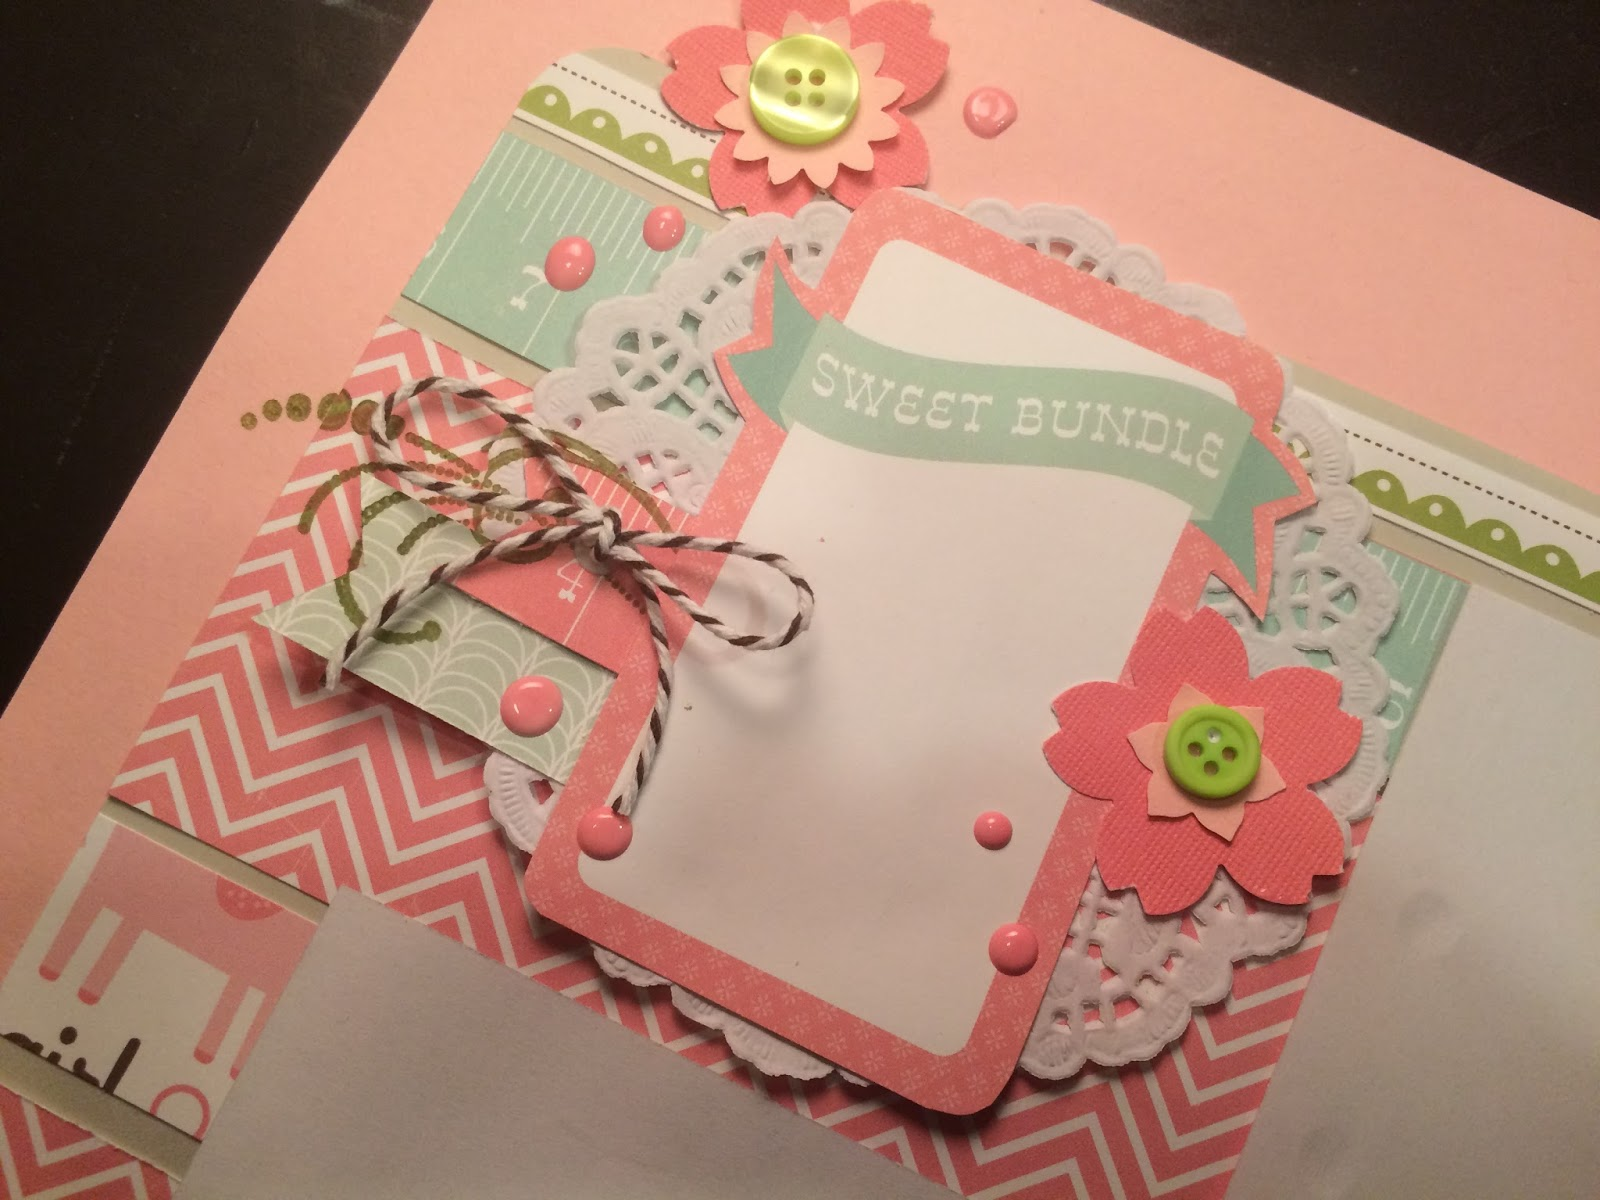 Baby girl scrapbook ideas - My Latest Customer Requested Gorgeous Baby Girl Pages So Here S What I Came Up With She Was Thrilled With The Results